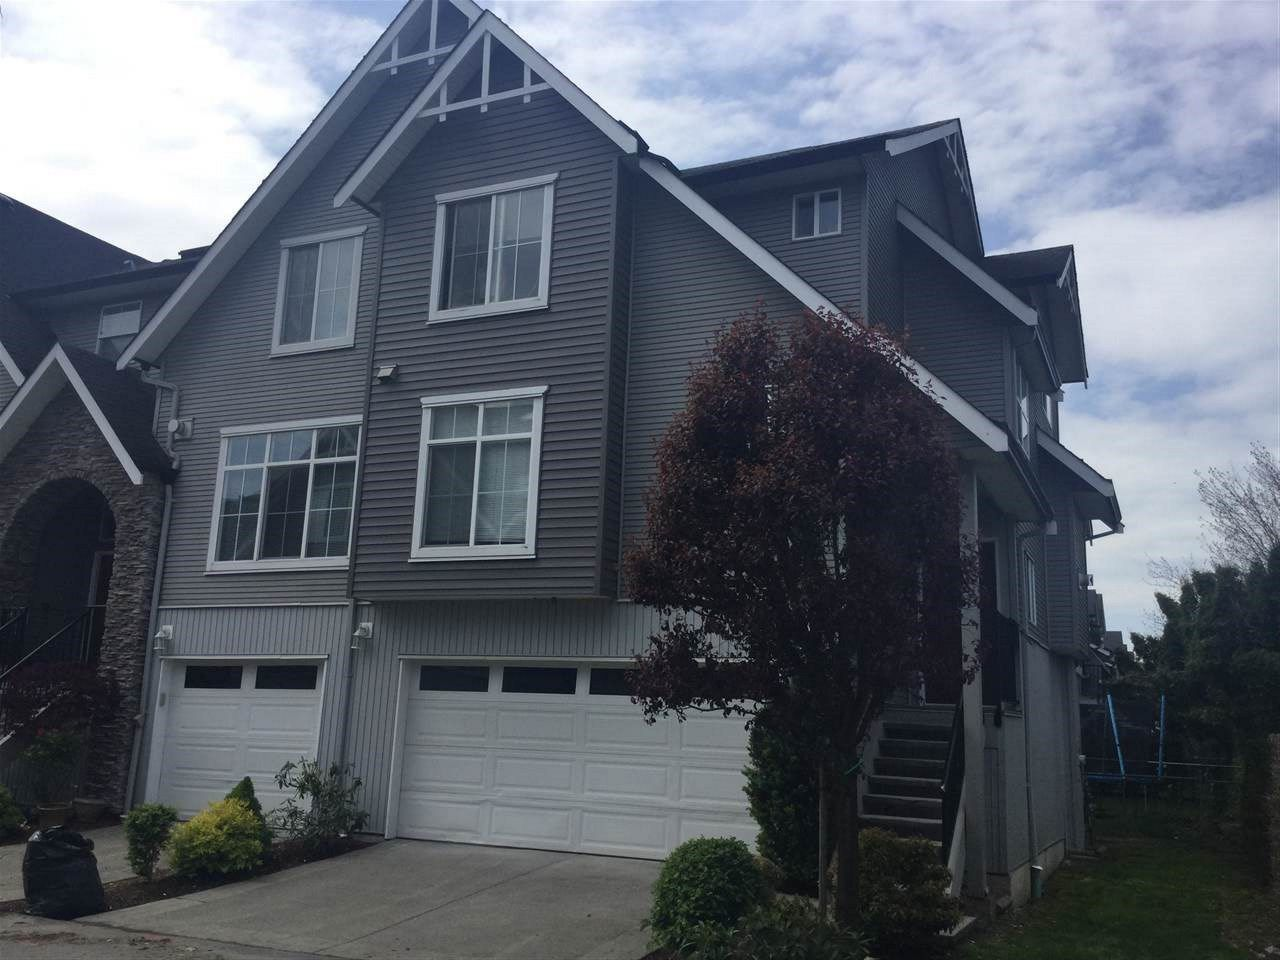 Main Photo: 50 8881 WALTERS Street in Chilliwack: Chilliwack E Young-Yale Townhouse for sale : MLS®# R2167613